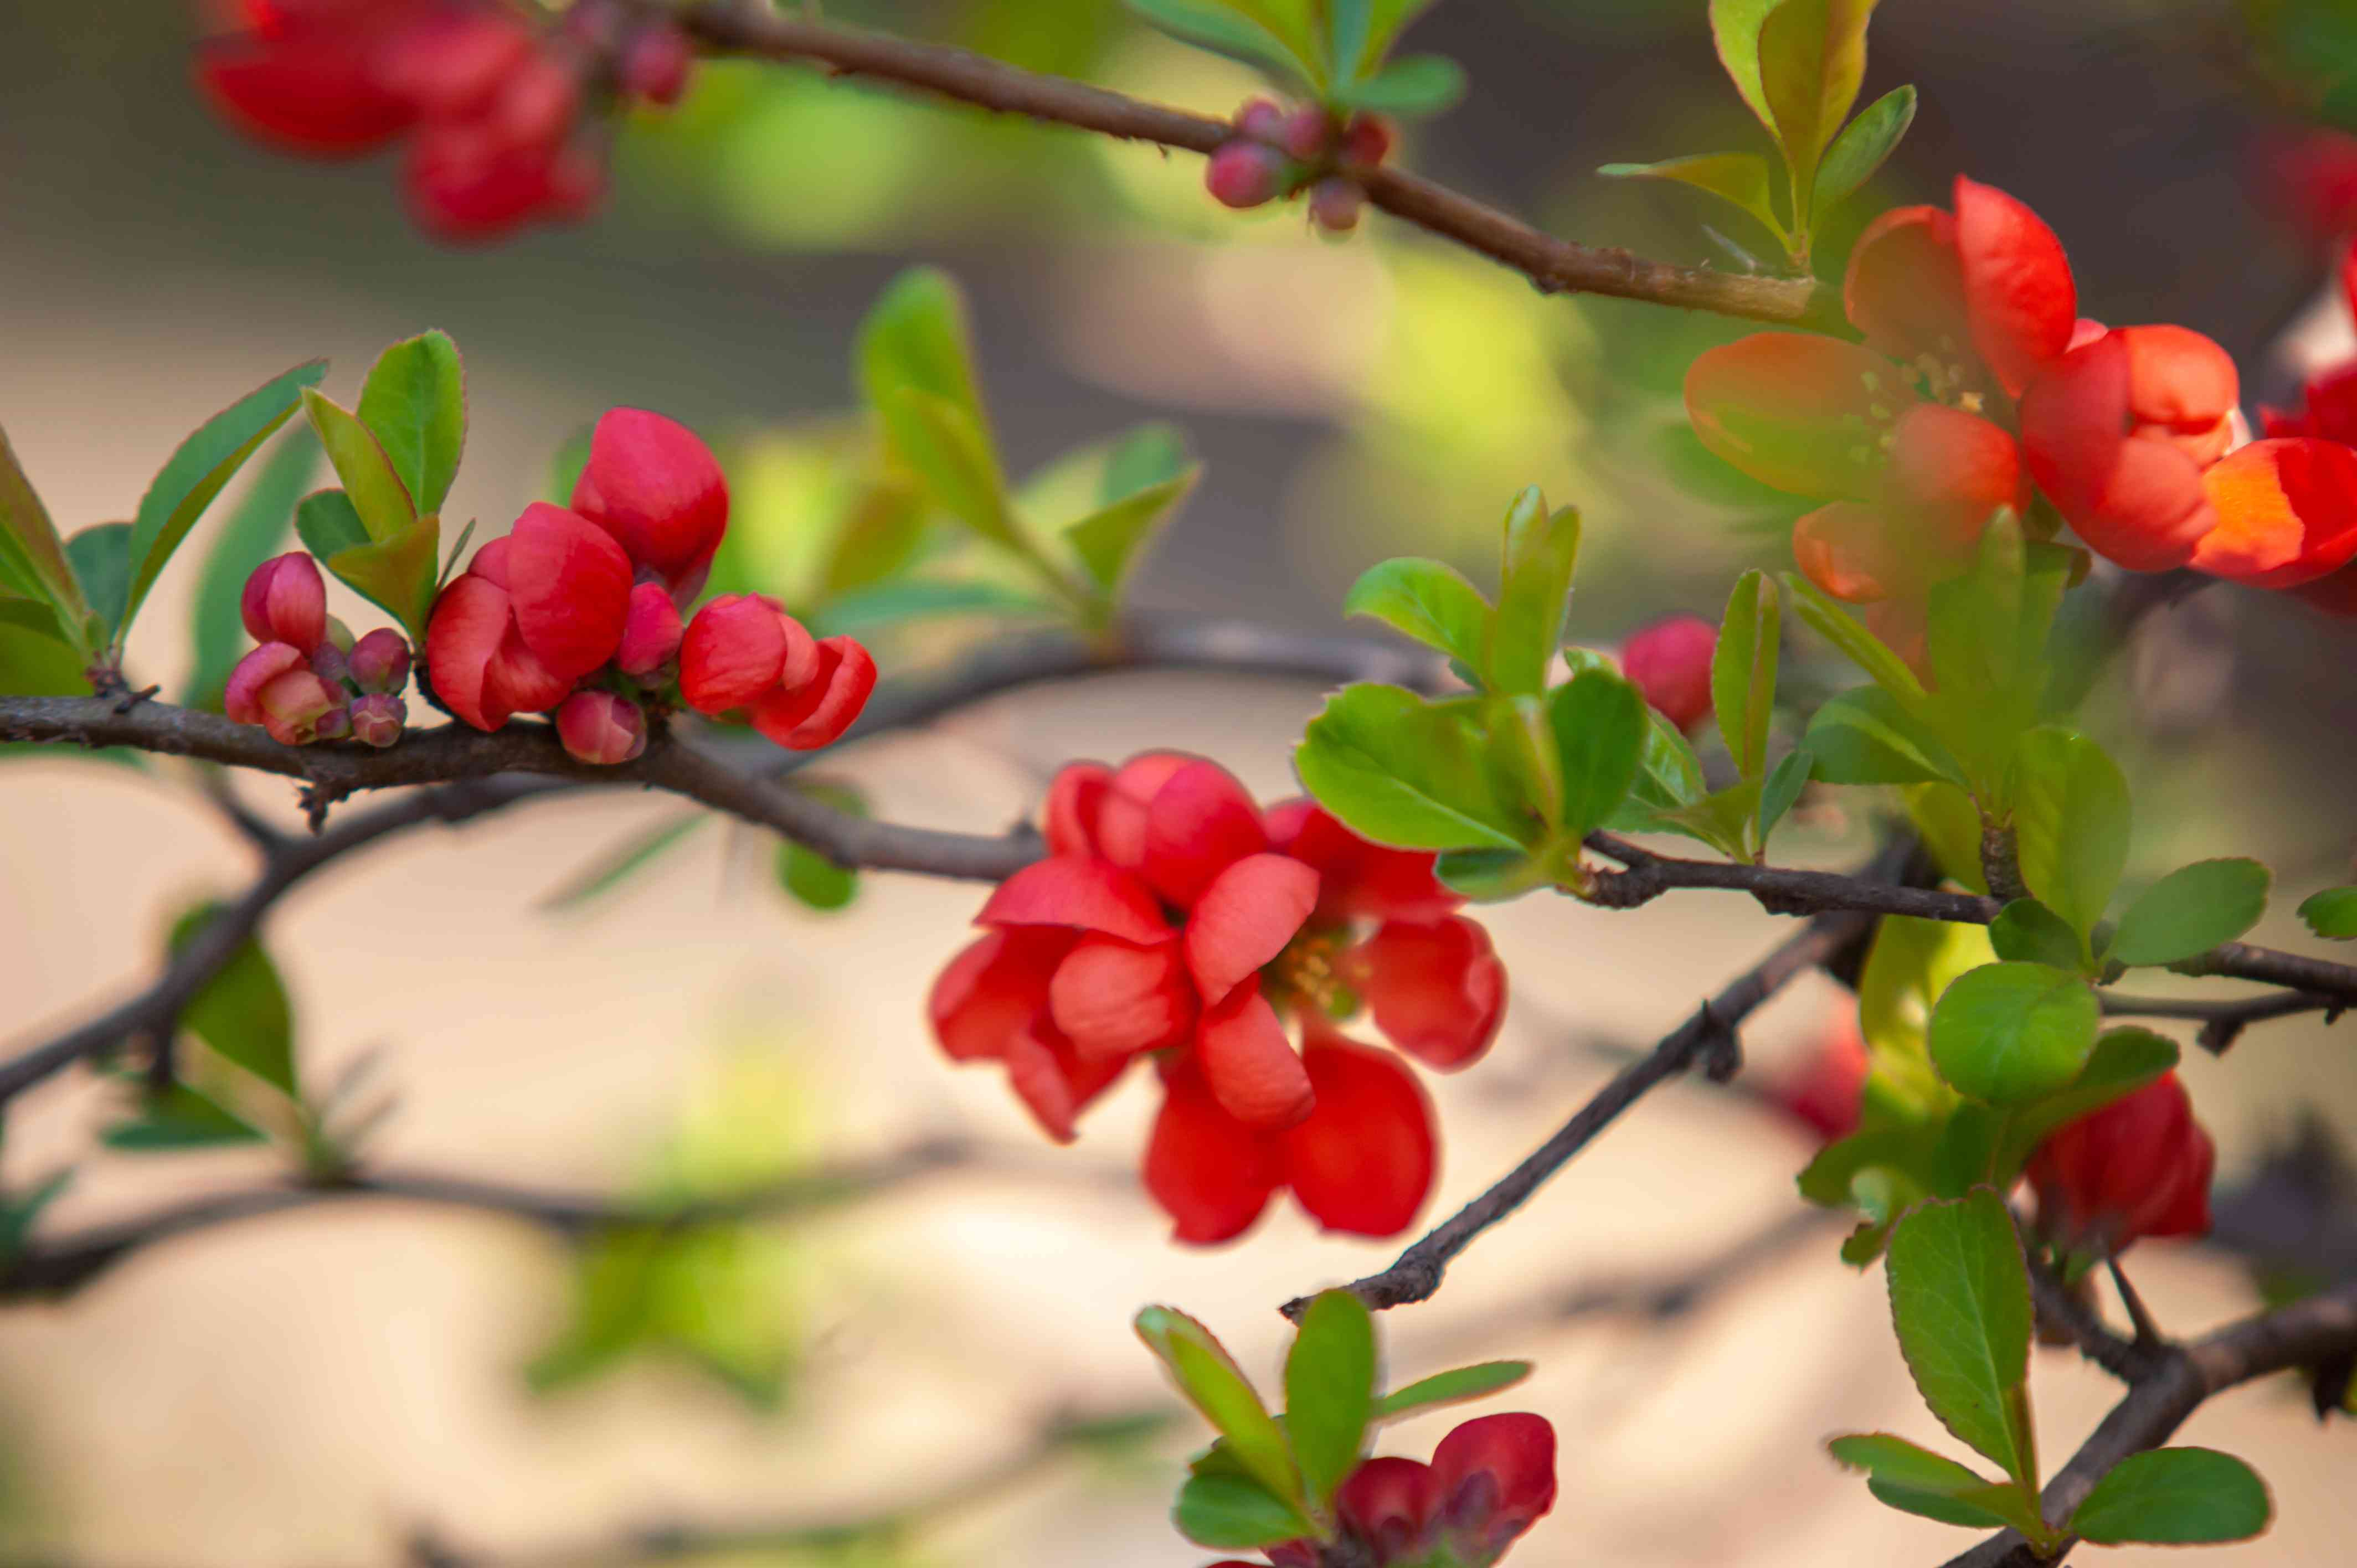 Flowering quince with red flowers on branches closeup